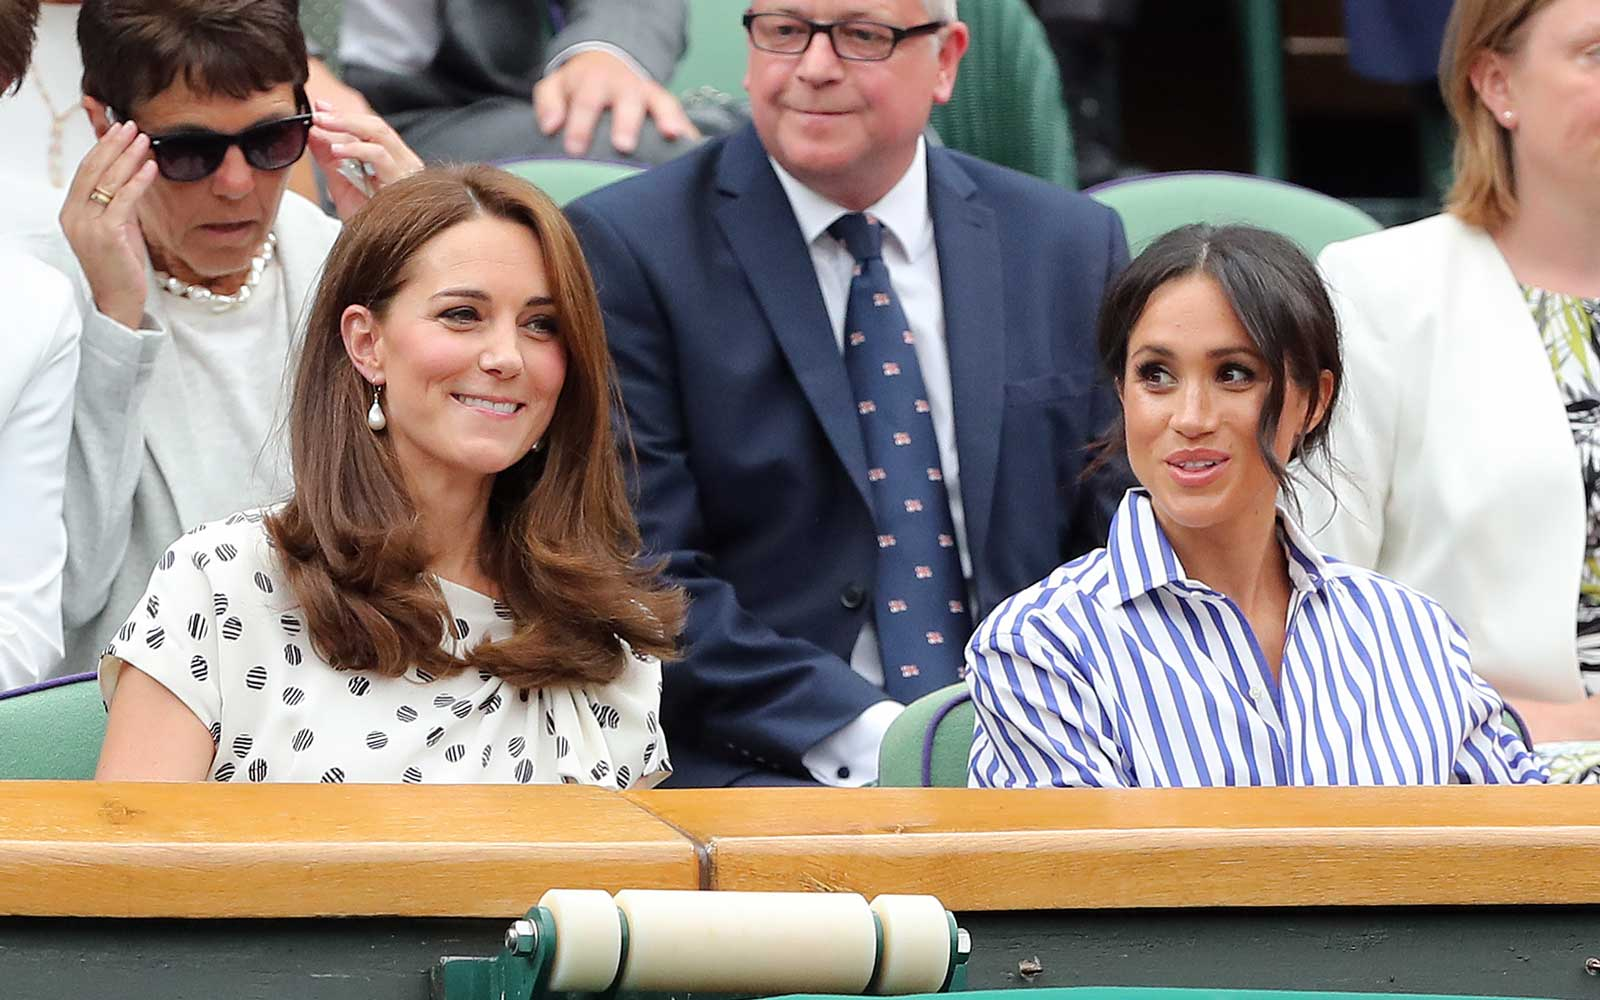 Kate Middleton and Meghan Markle Will Be Cheering on Serena Williams at Wimbledon